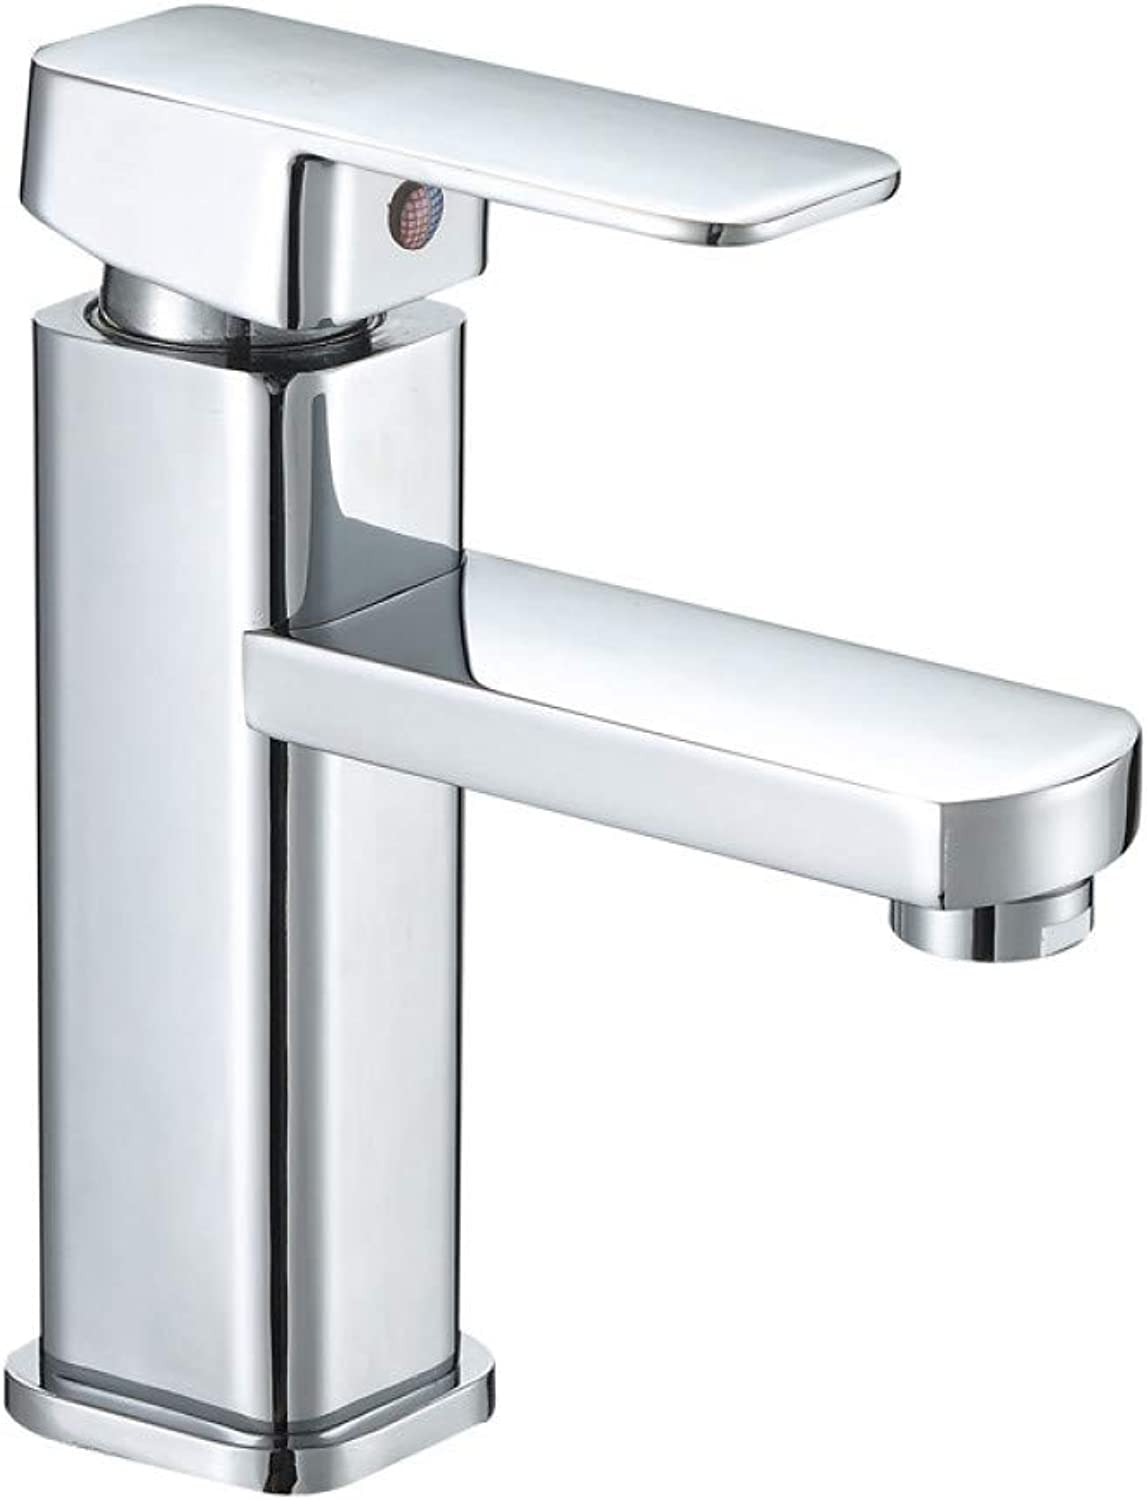 L22LW Faucet Galvanised Square Single Hole Wash Basin Cold Water Tap Square Basin Mixer Taps Bathroom Cabinet